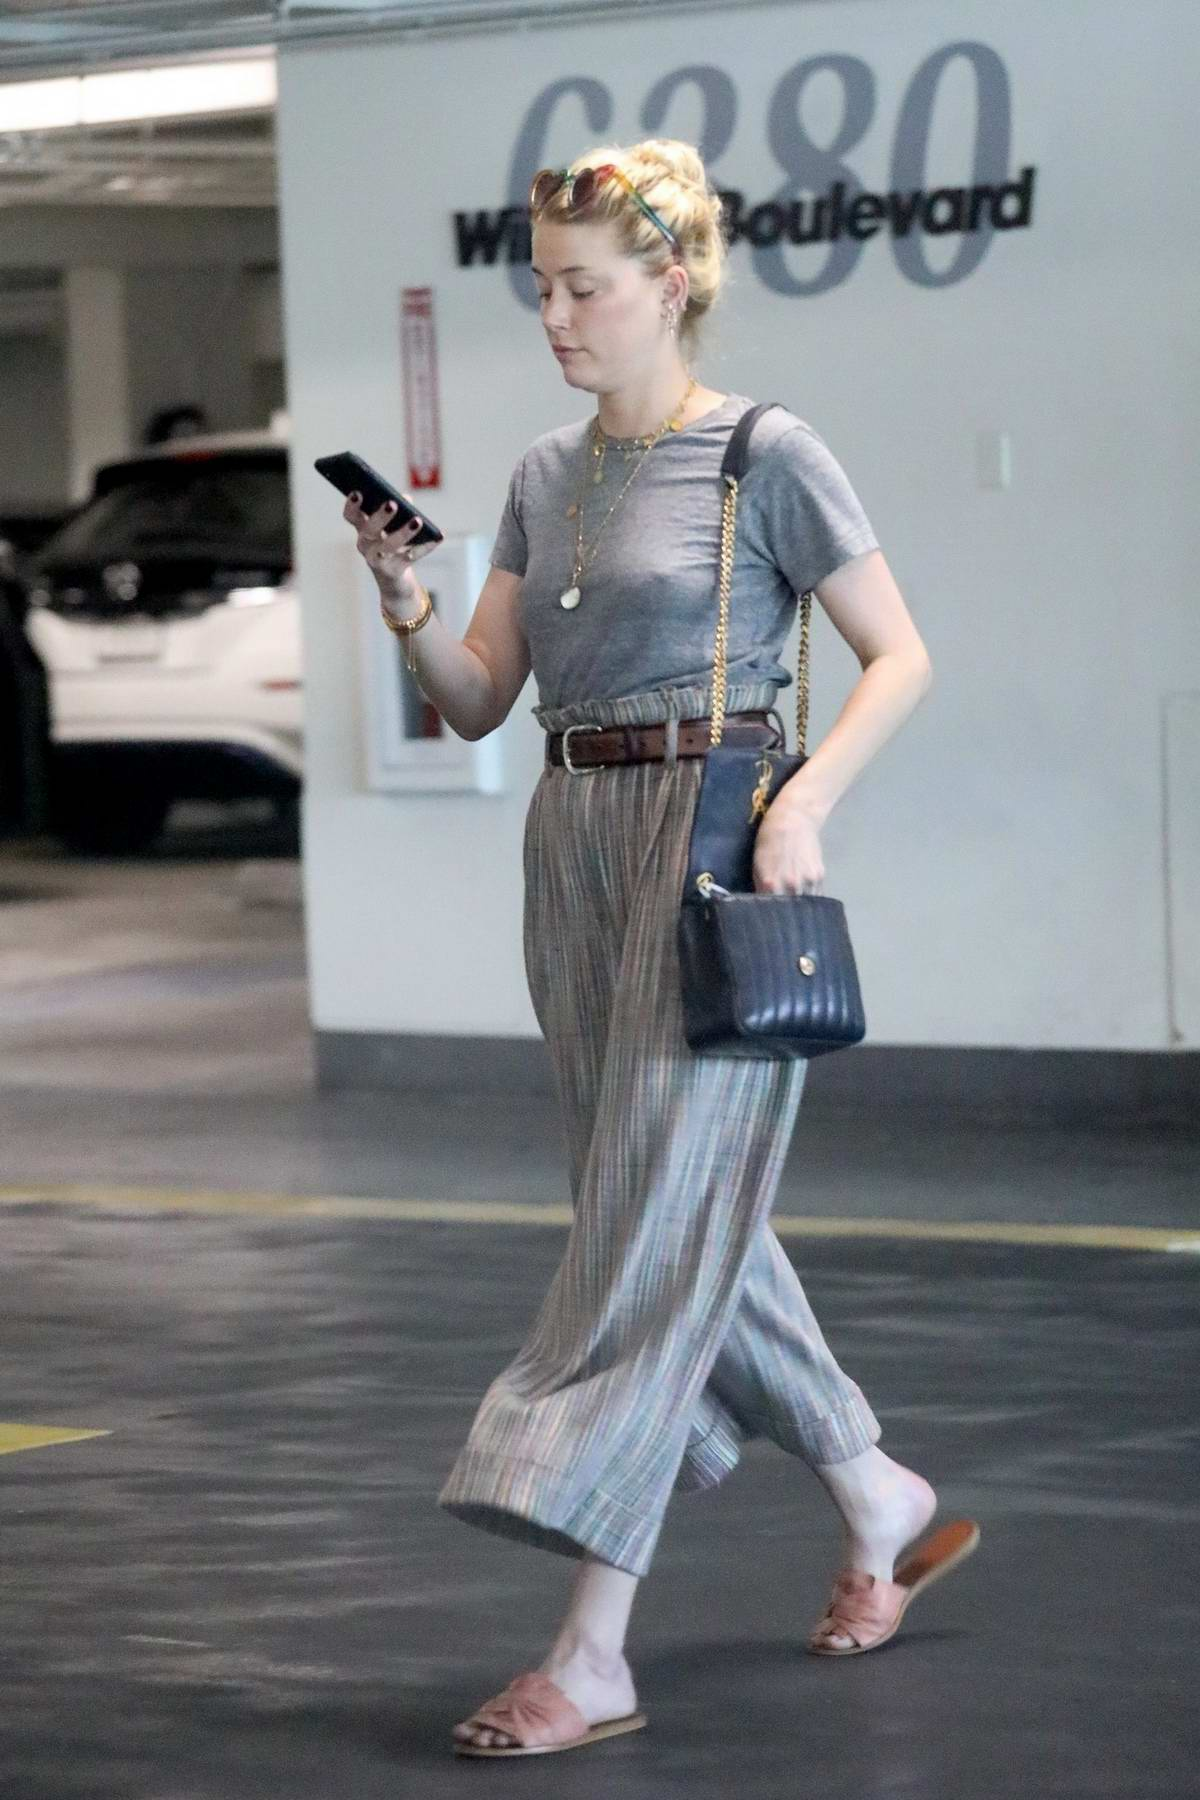 Amber Heard checks her messages after a meeting with lawyers on Wilshire Boulevard in Los Angeles